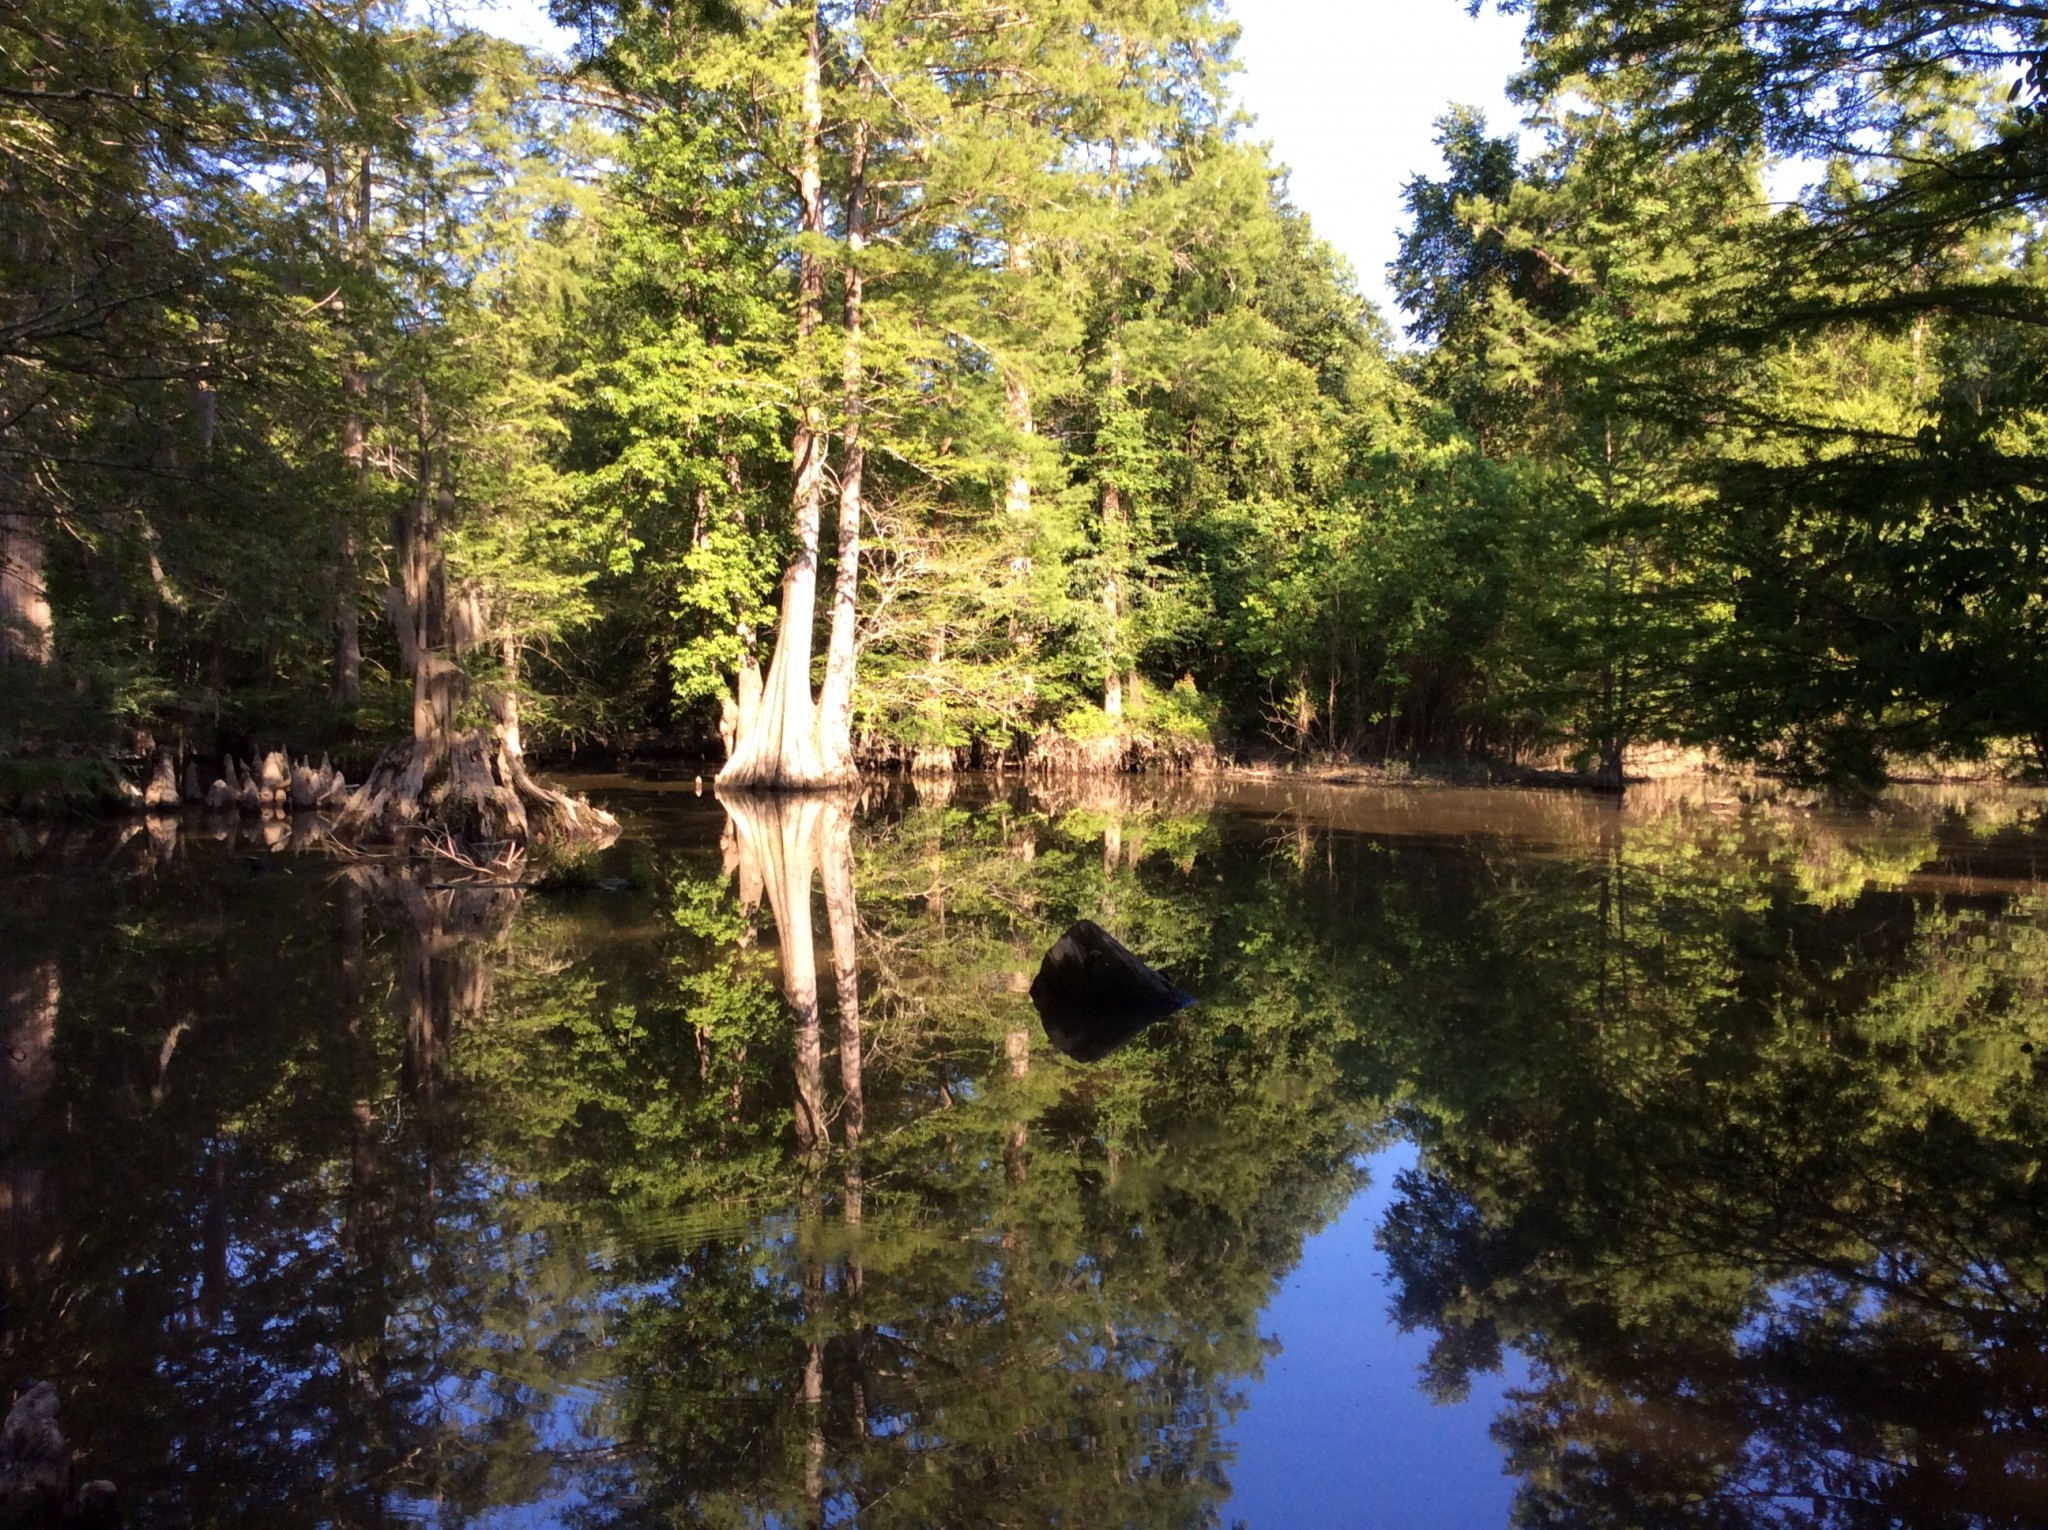 Castor Creek Tract, Caldwell Parish, 350 Acres +/- | Mossy Oak